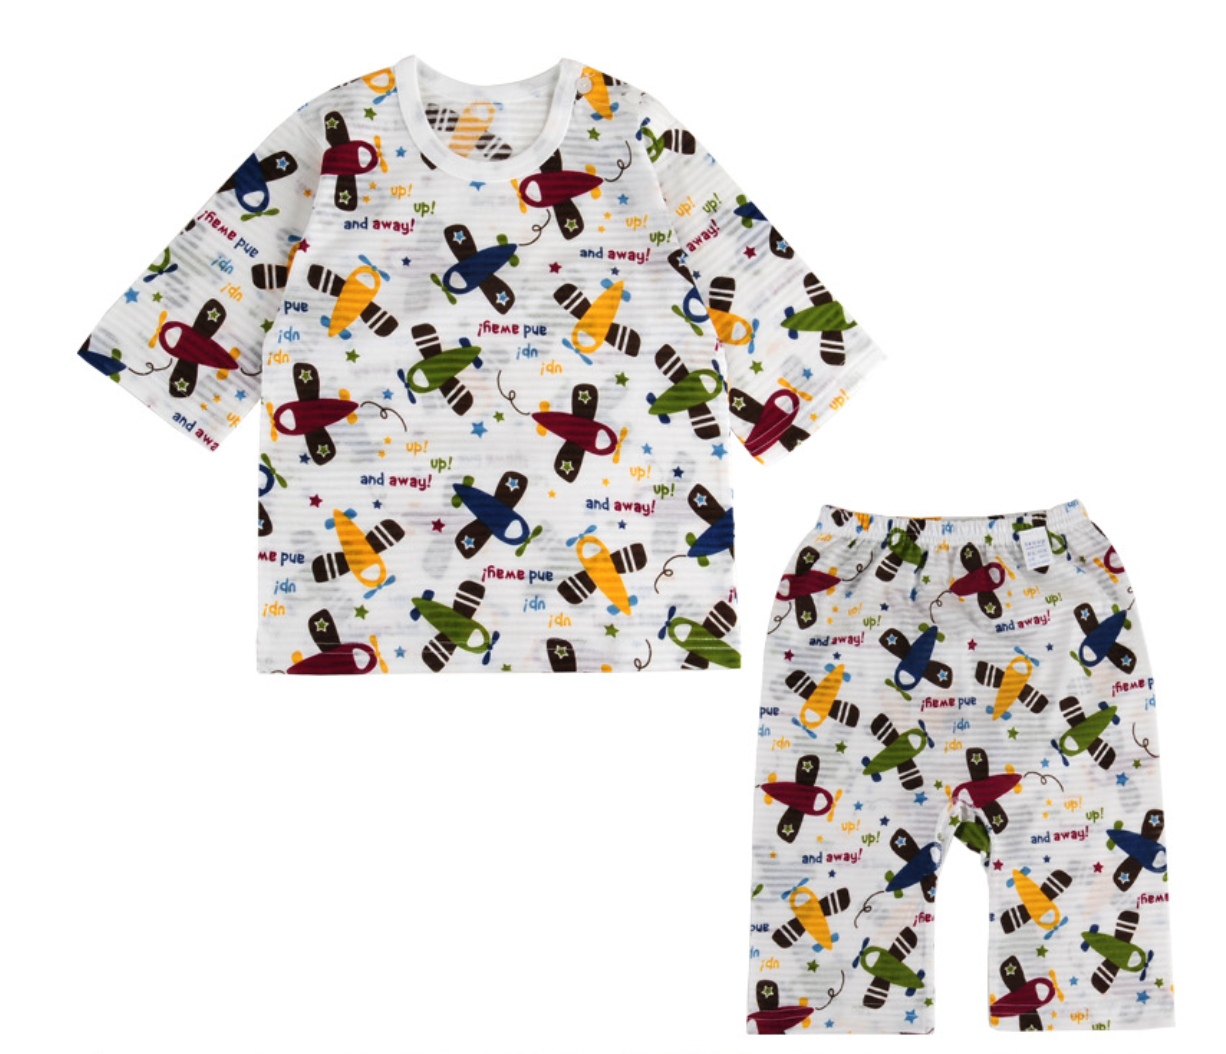 Toddler Boy's Take Flight Airplane 3/4 Sleeve Pajamas - Bonjour Bear 12M to 2T